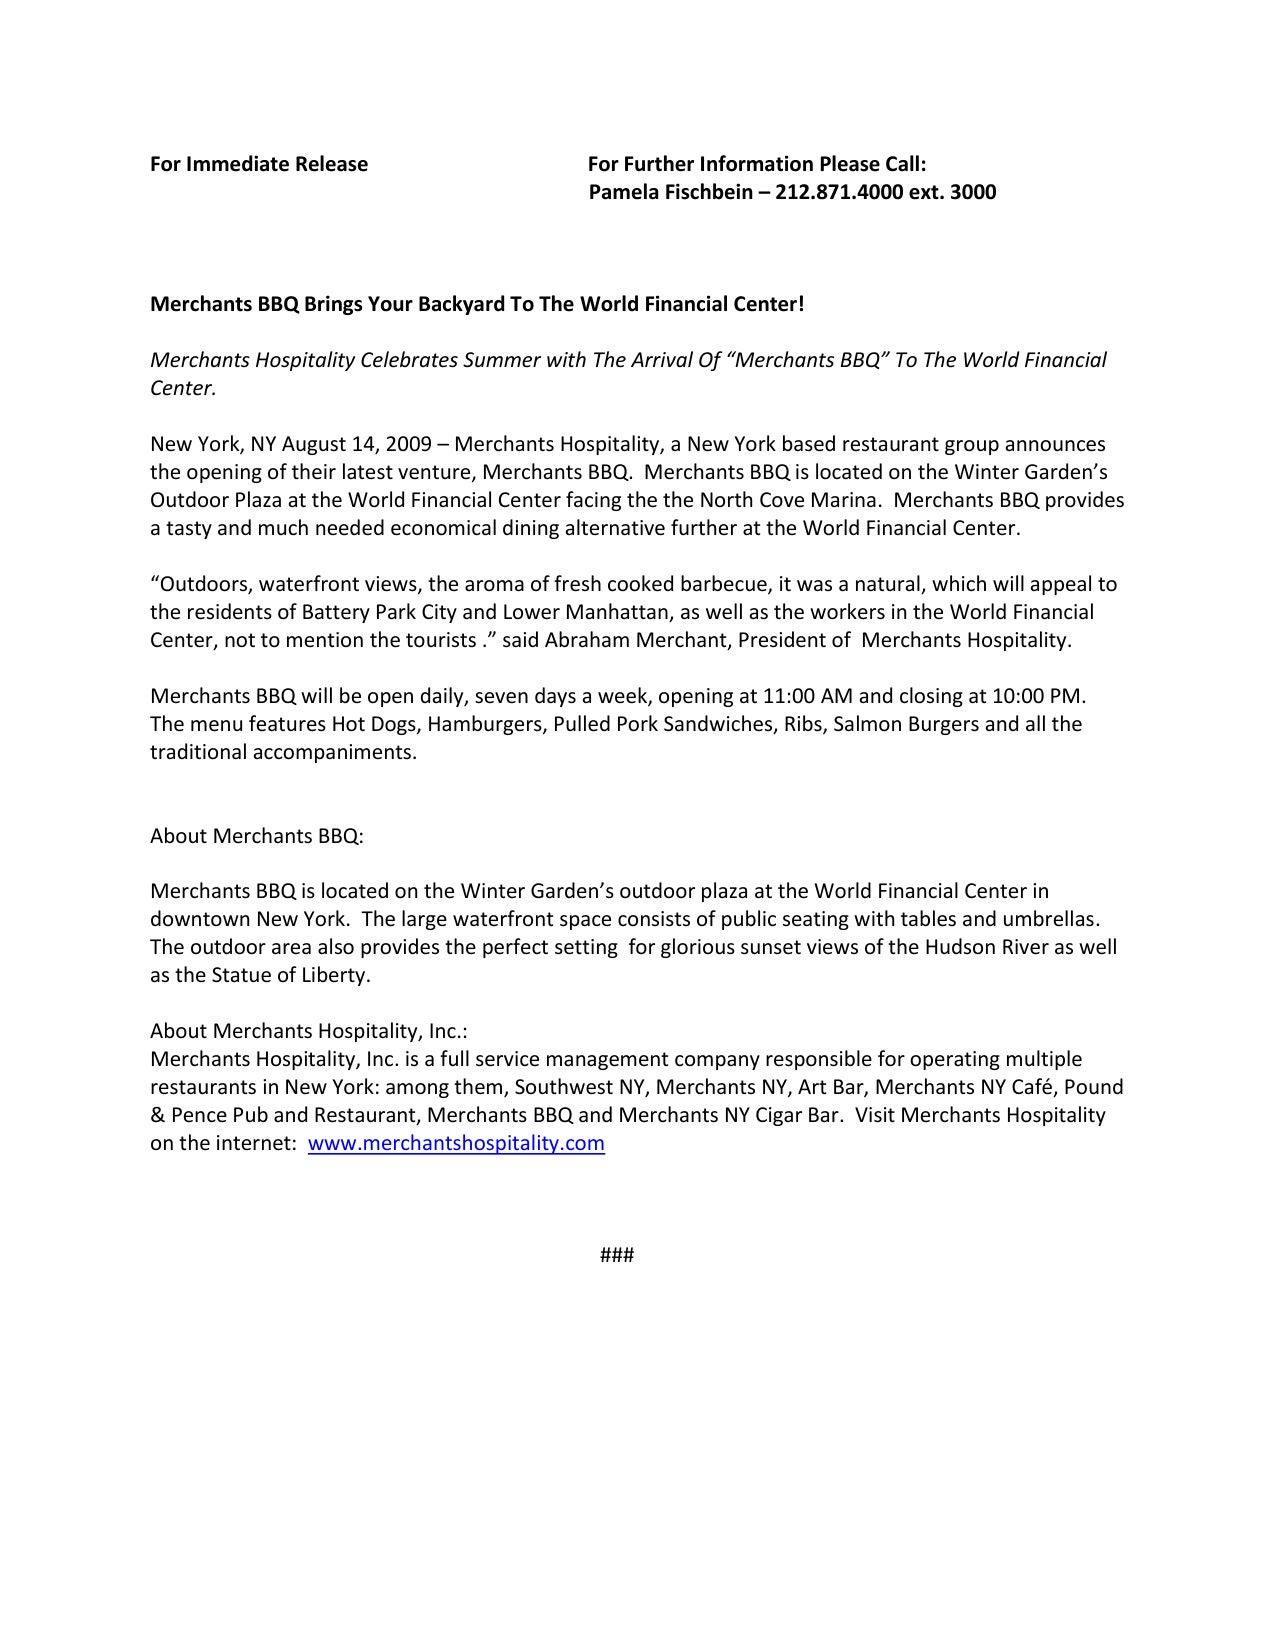 Merchants BBQ - Press Release by Pamela Fischbein - issuu